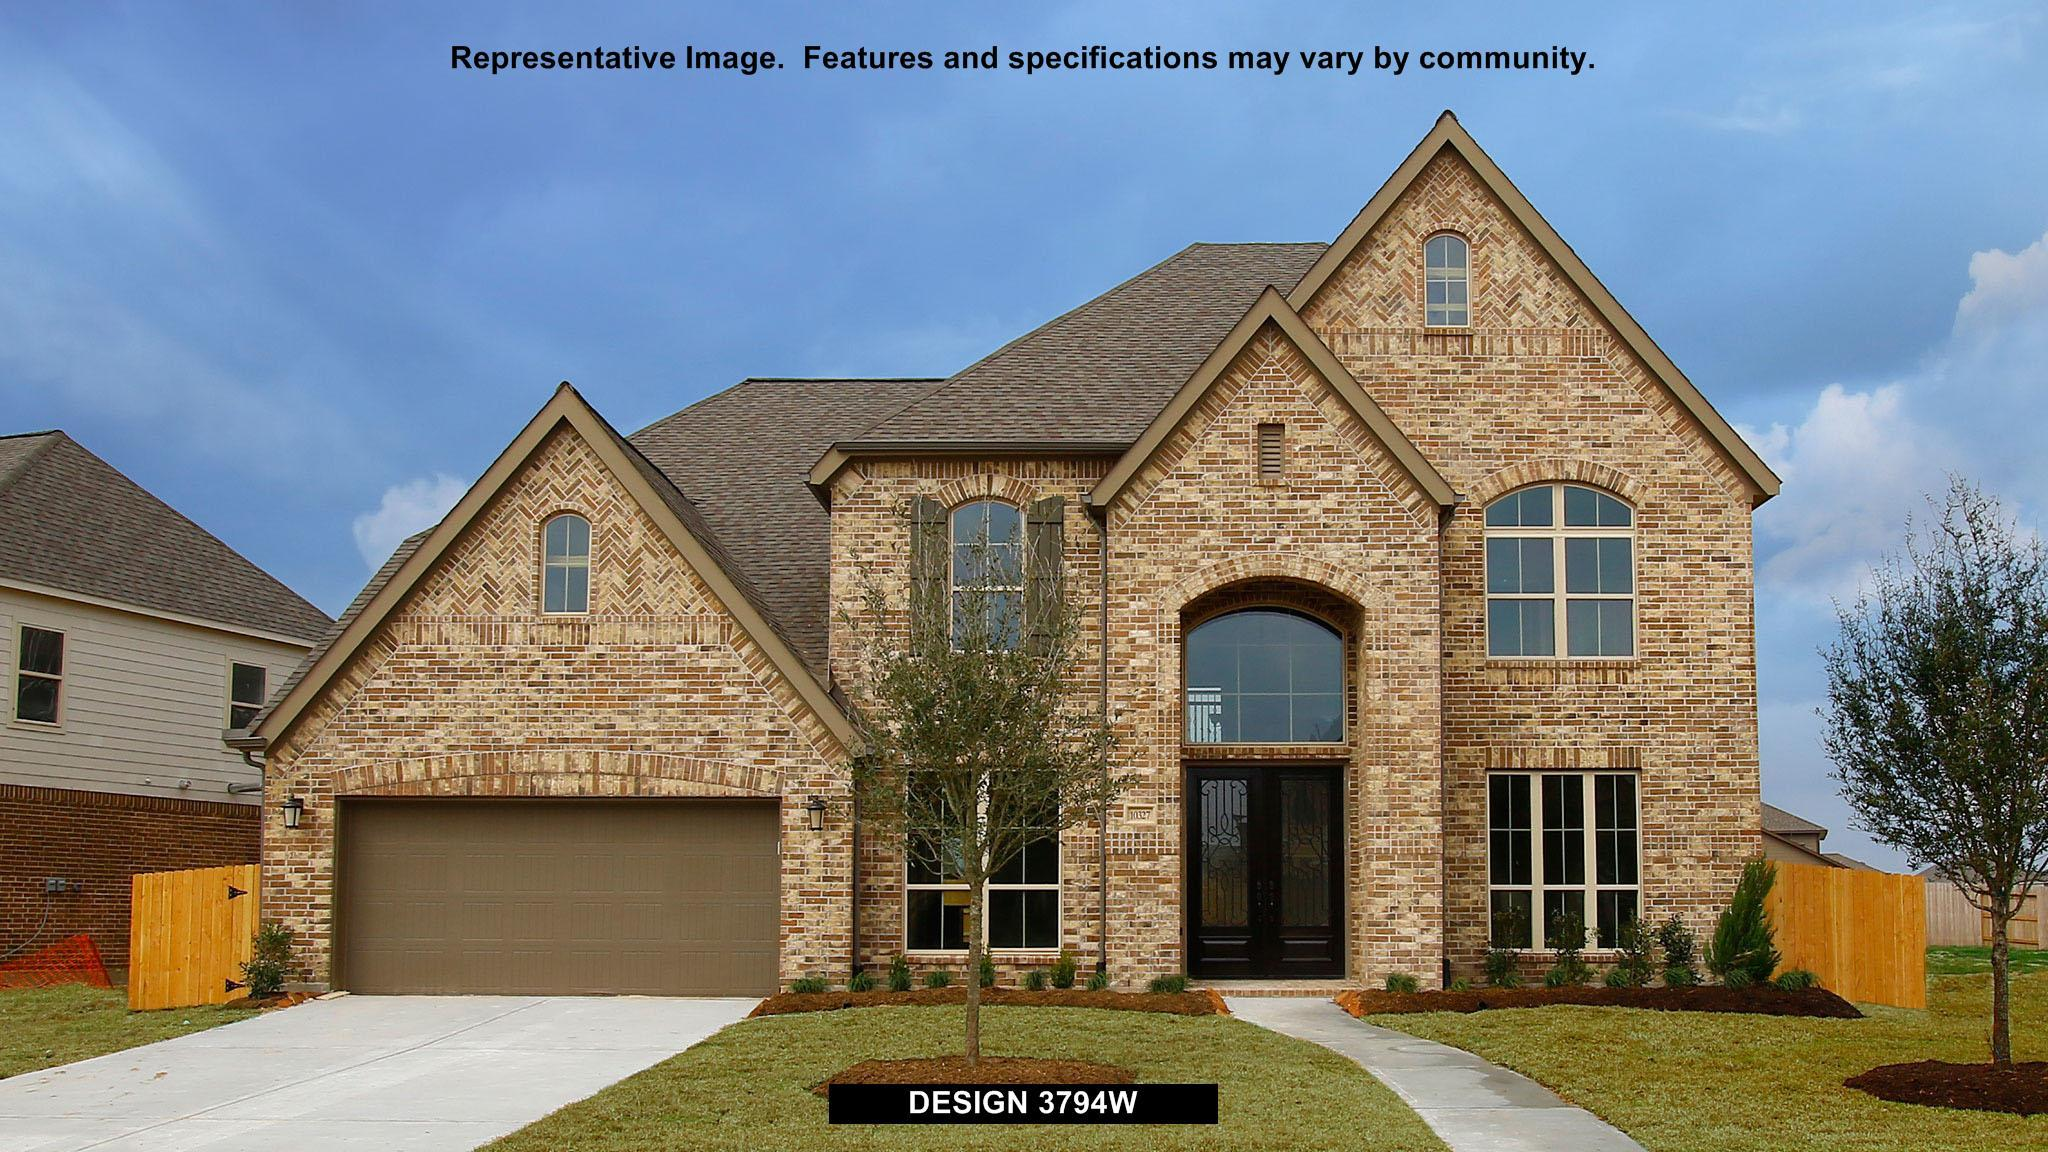 Single Family for Sale at The Groves 70' - 3794w 17306 Sages Ravine Drive Atascocita, Texas 77346 United States